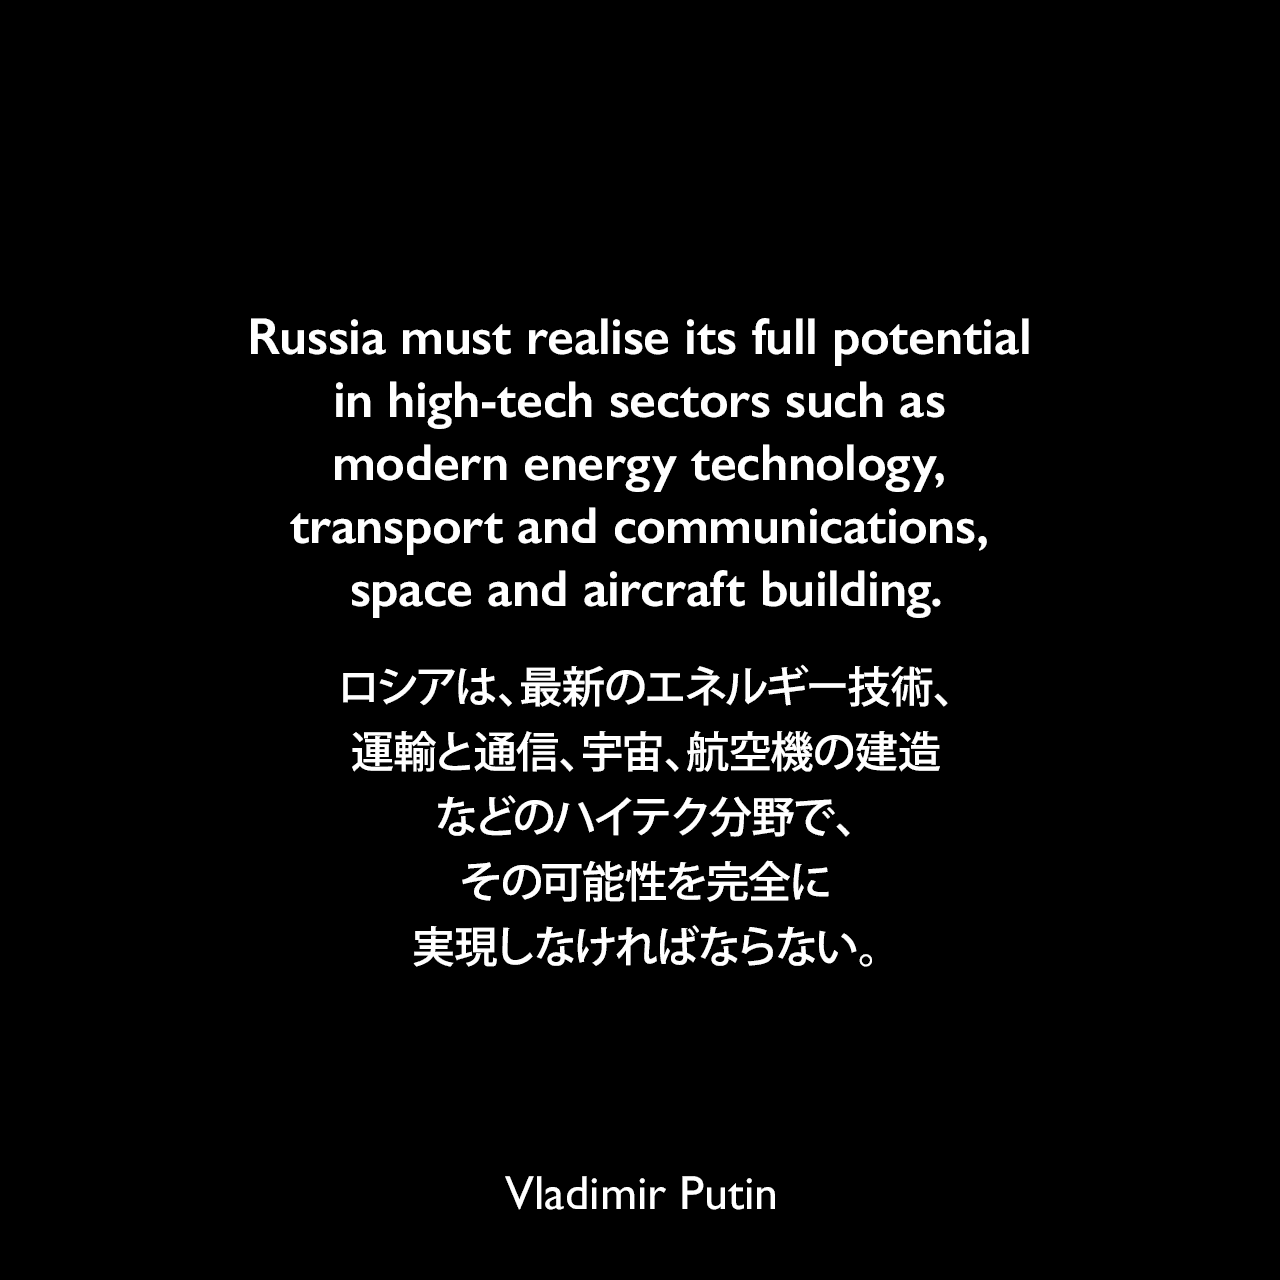 Russia must realise its full potential in high-tech sectors such as modern energy technology, transport and communications, space and aircraft building.ロシアは、最新のエネルギー技術、運輸と通信、宇宙、航空機の建造などのハイテク分野で、その可能性を完全に実現しなければならない。- 2006年5月、連邦議会での年次演説よりVladimir Putin